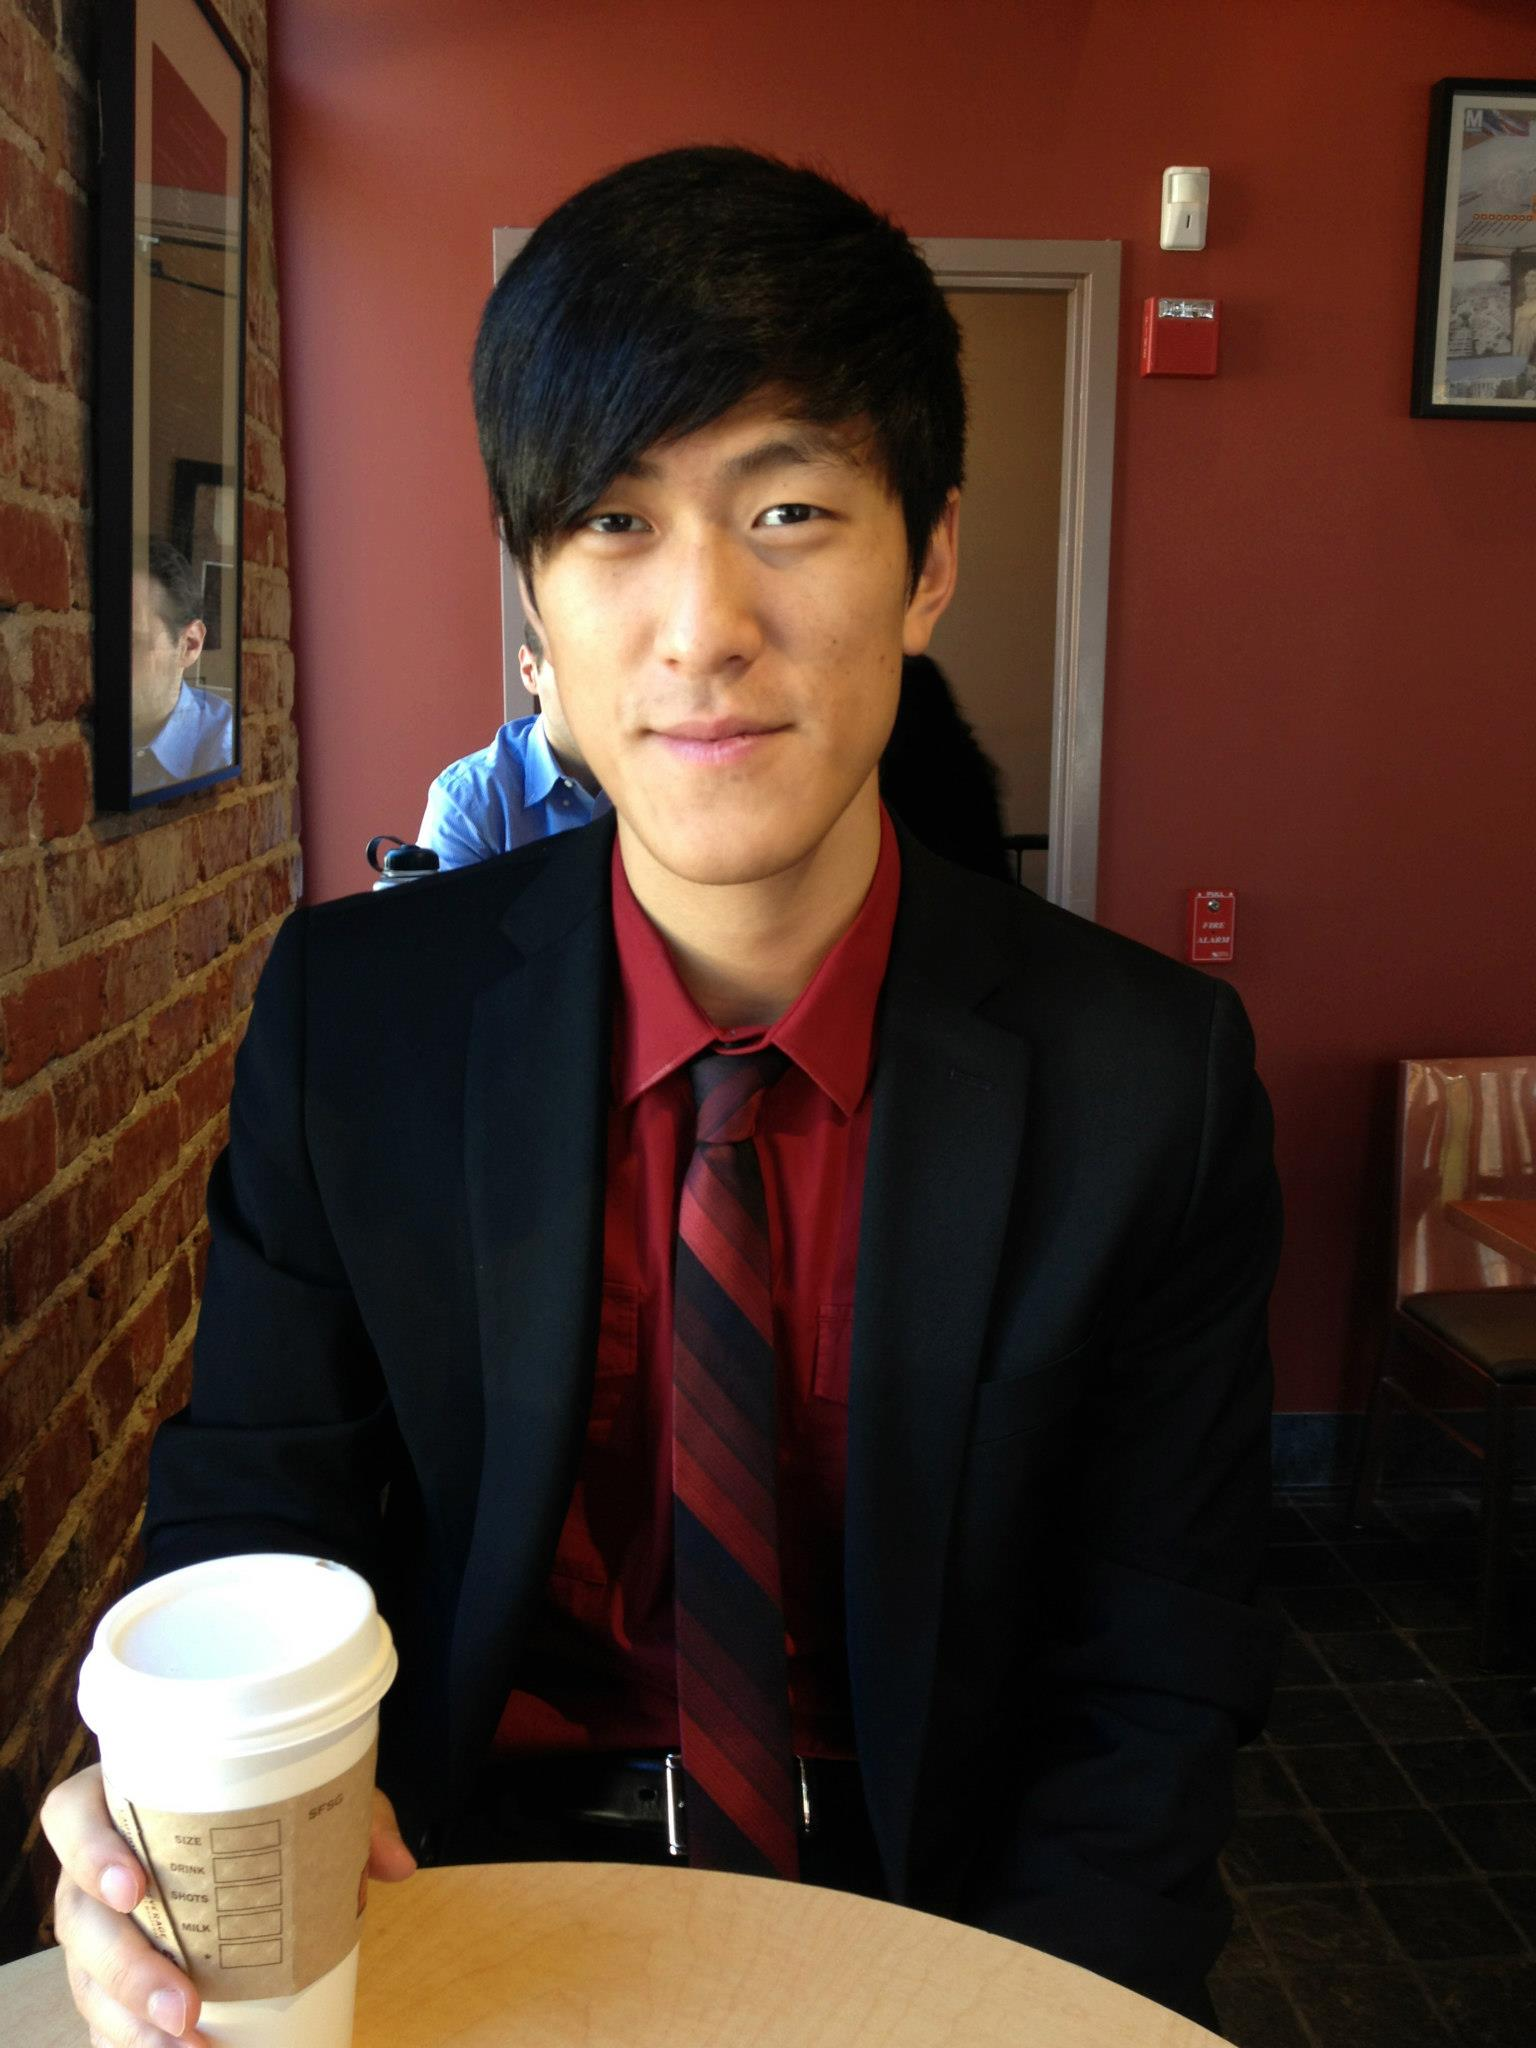 Our newest staff member, Kwonsun, serves as our Program Assistant. Welcome to the team!